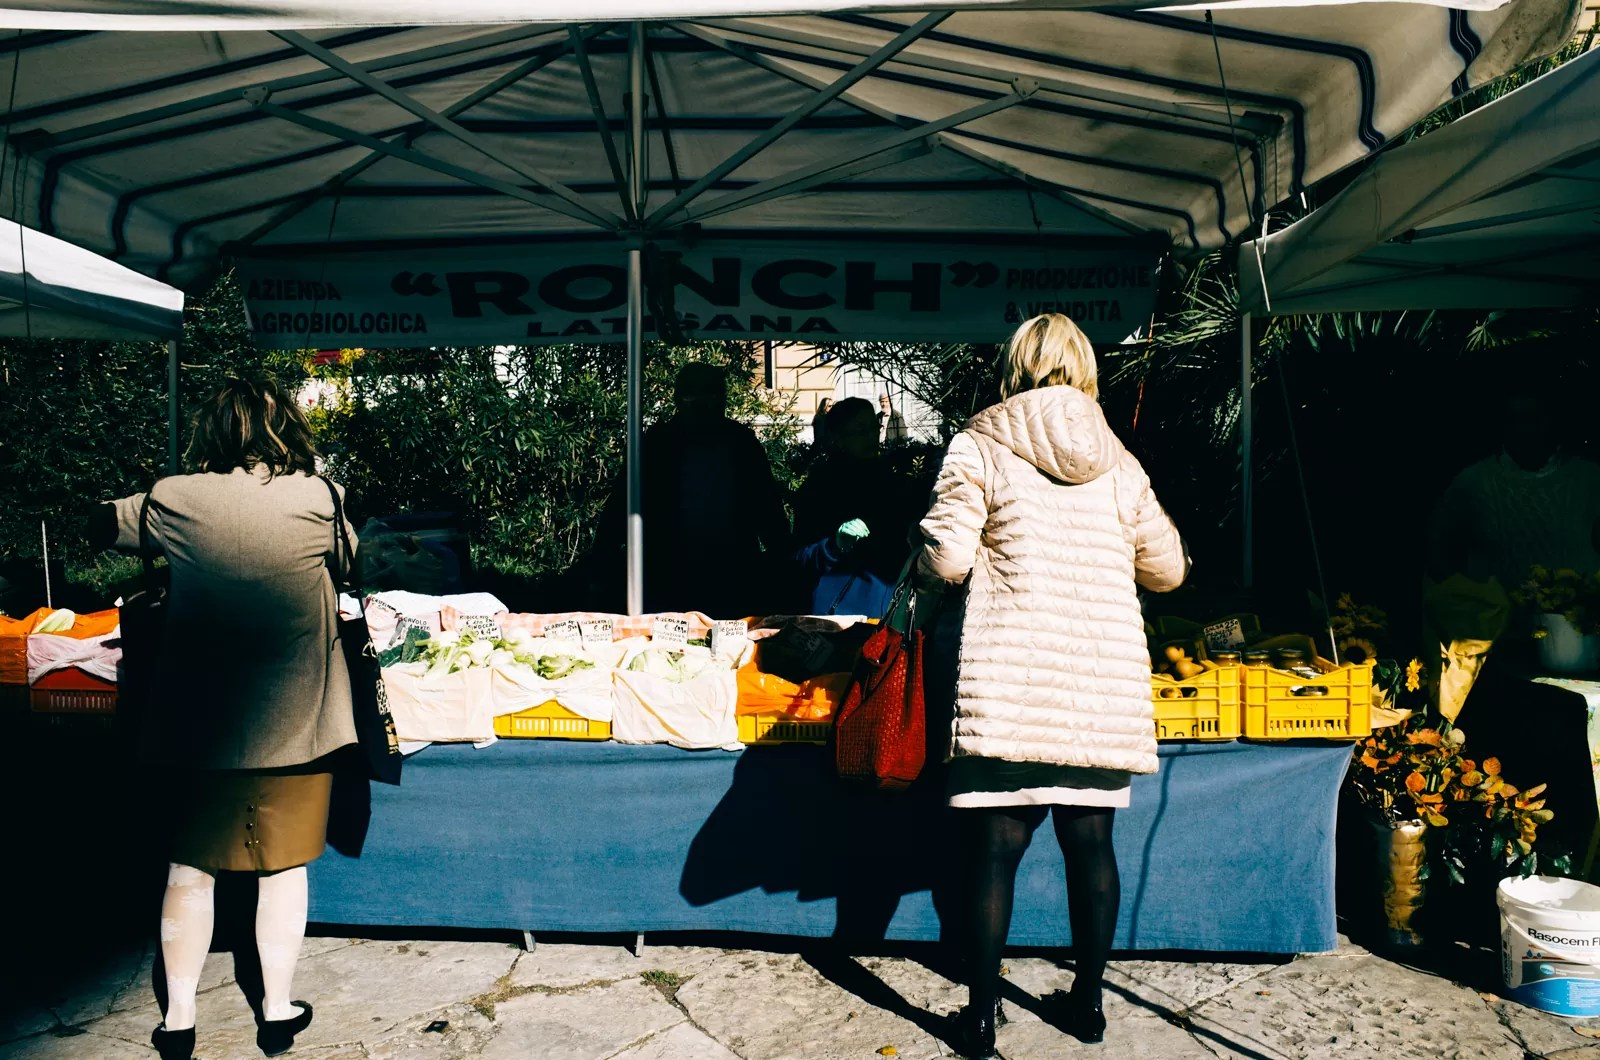 R0006675 - One Day in Trieste [Color Street Photography] - fotostreet.it